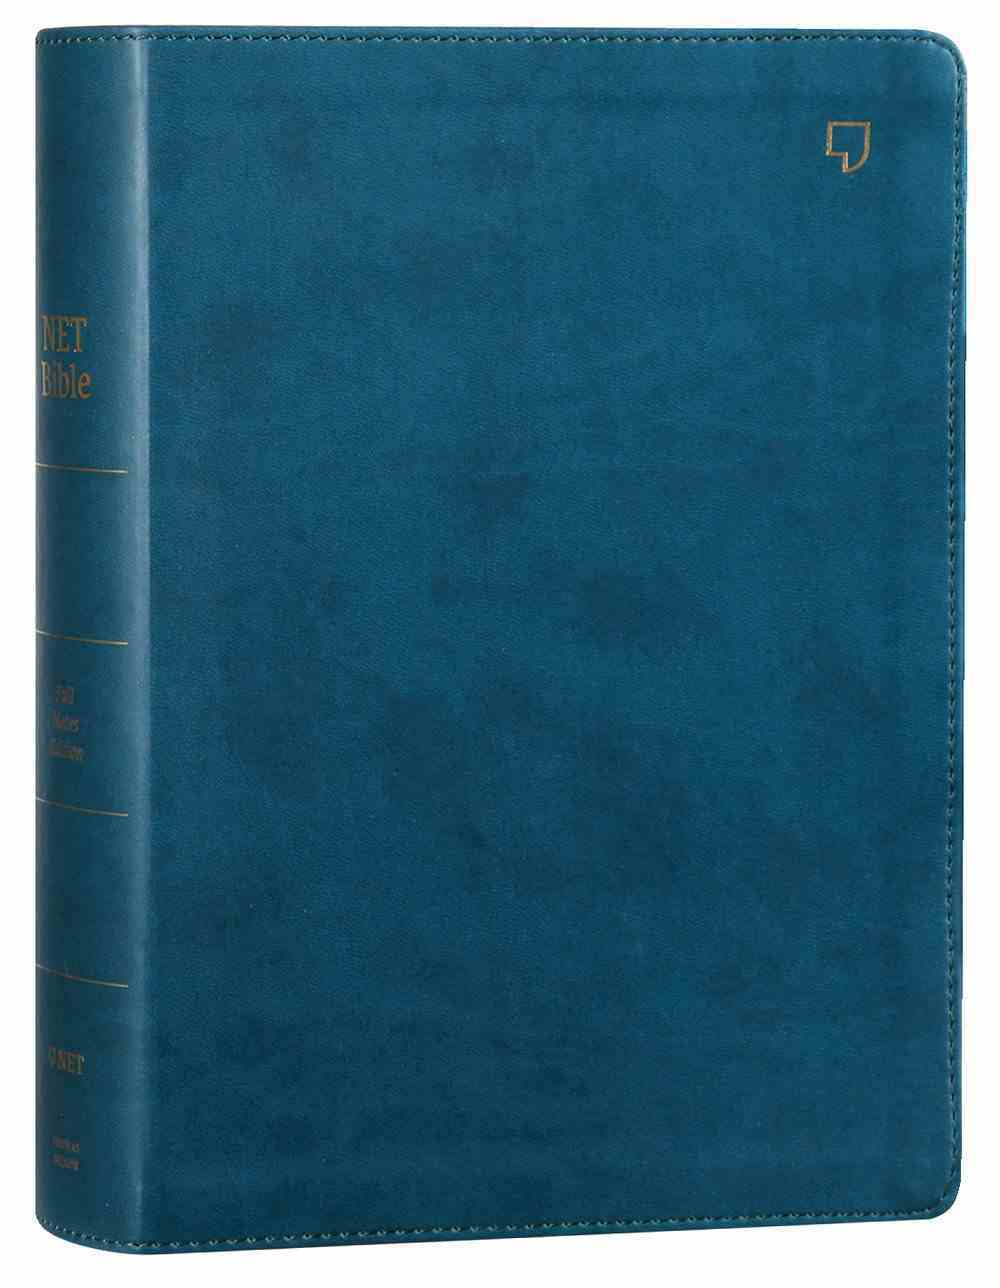 NET Bible Full-Notes Edition Teal (Black Letter Edition) Premium Imitation Leather